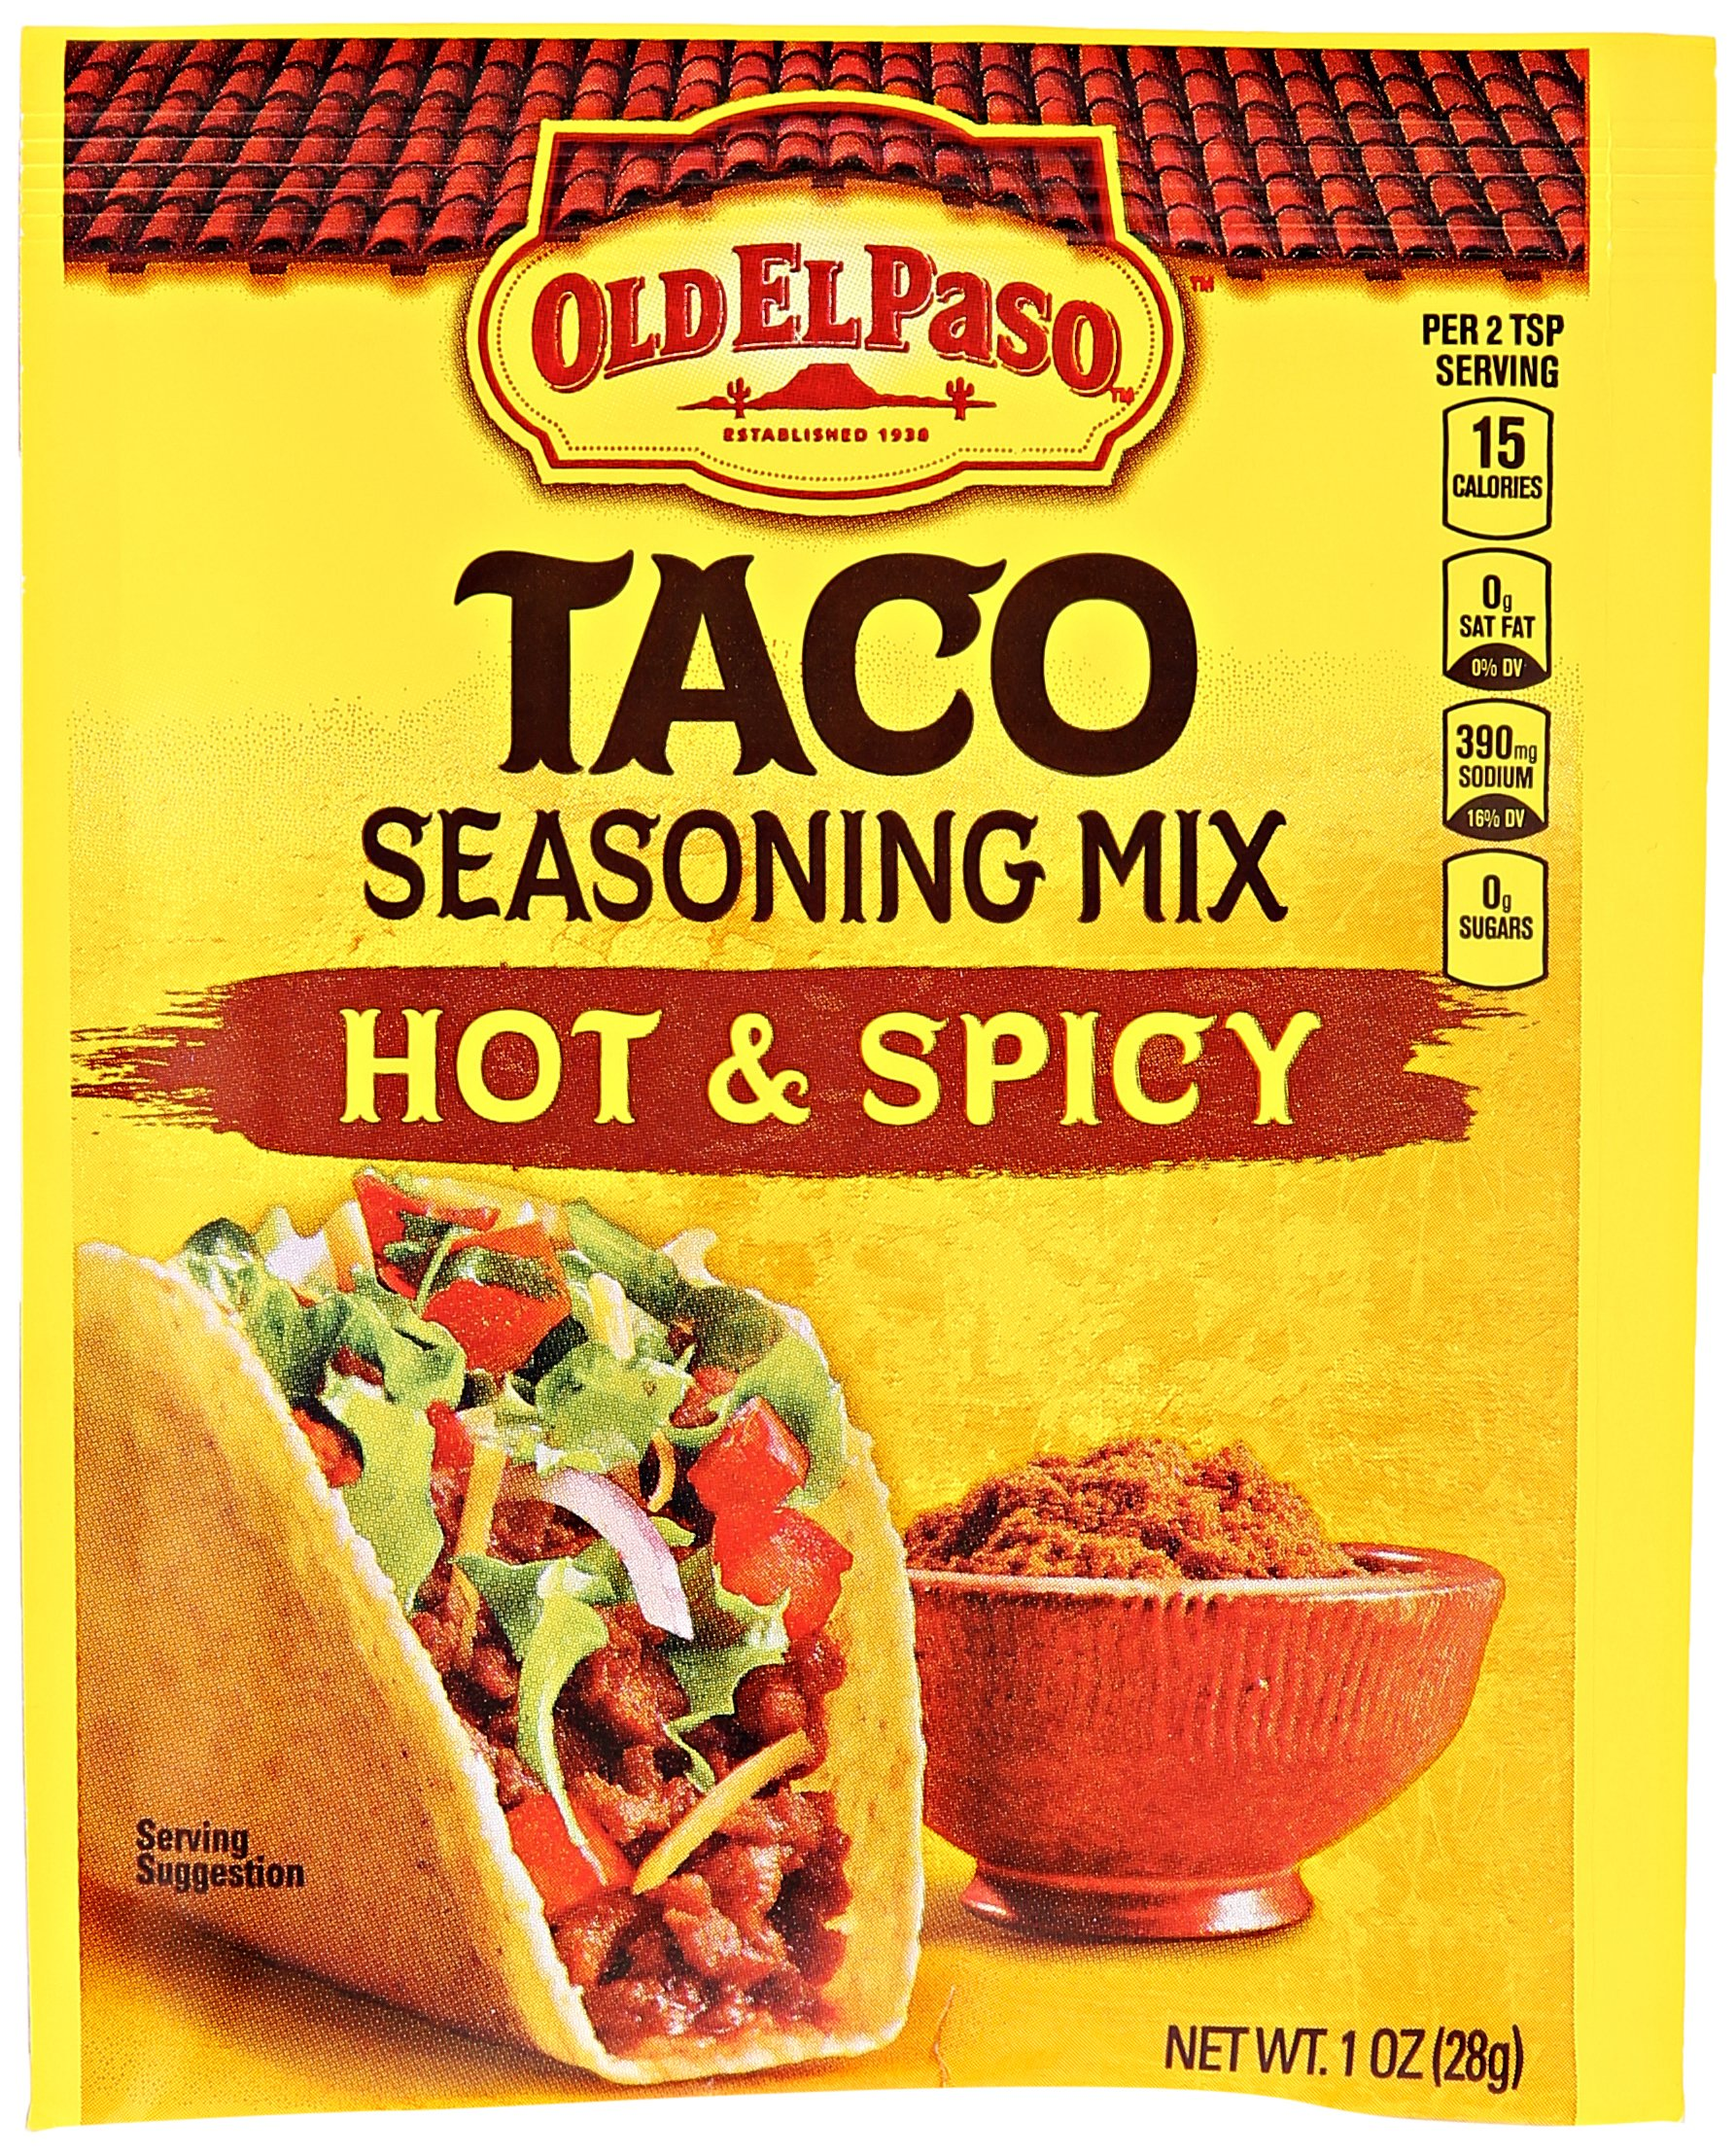 Old El Paso Hot & Spicy Taco Seasoning Mix 1 oz. Packet